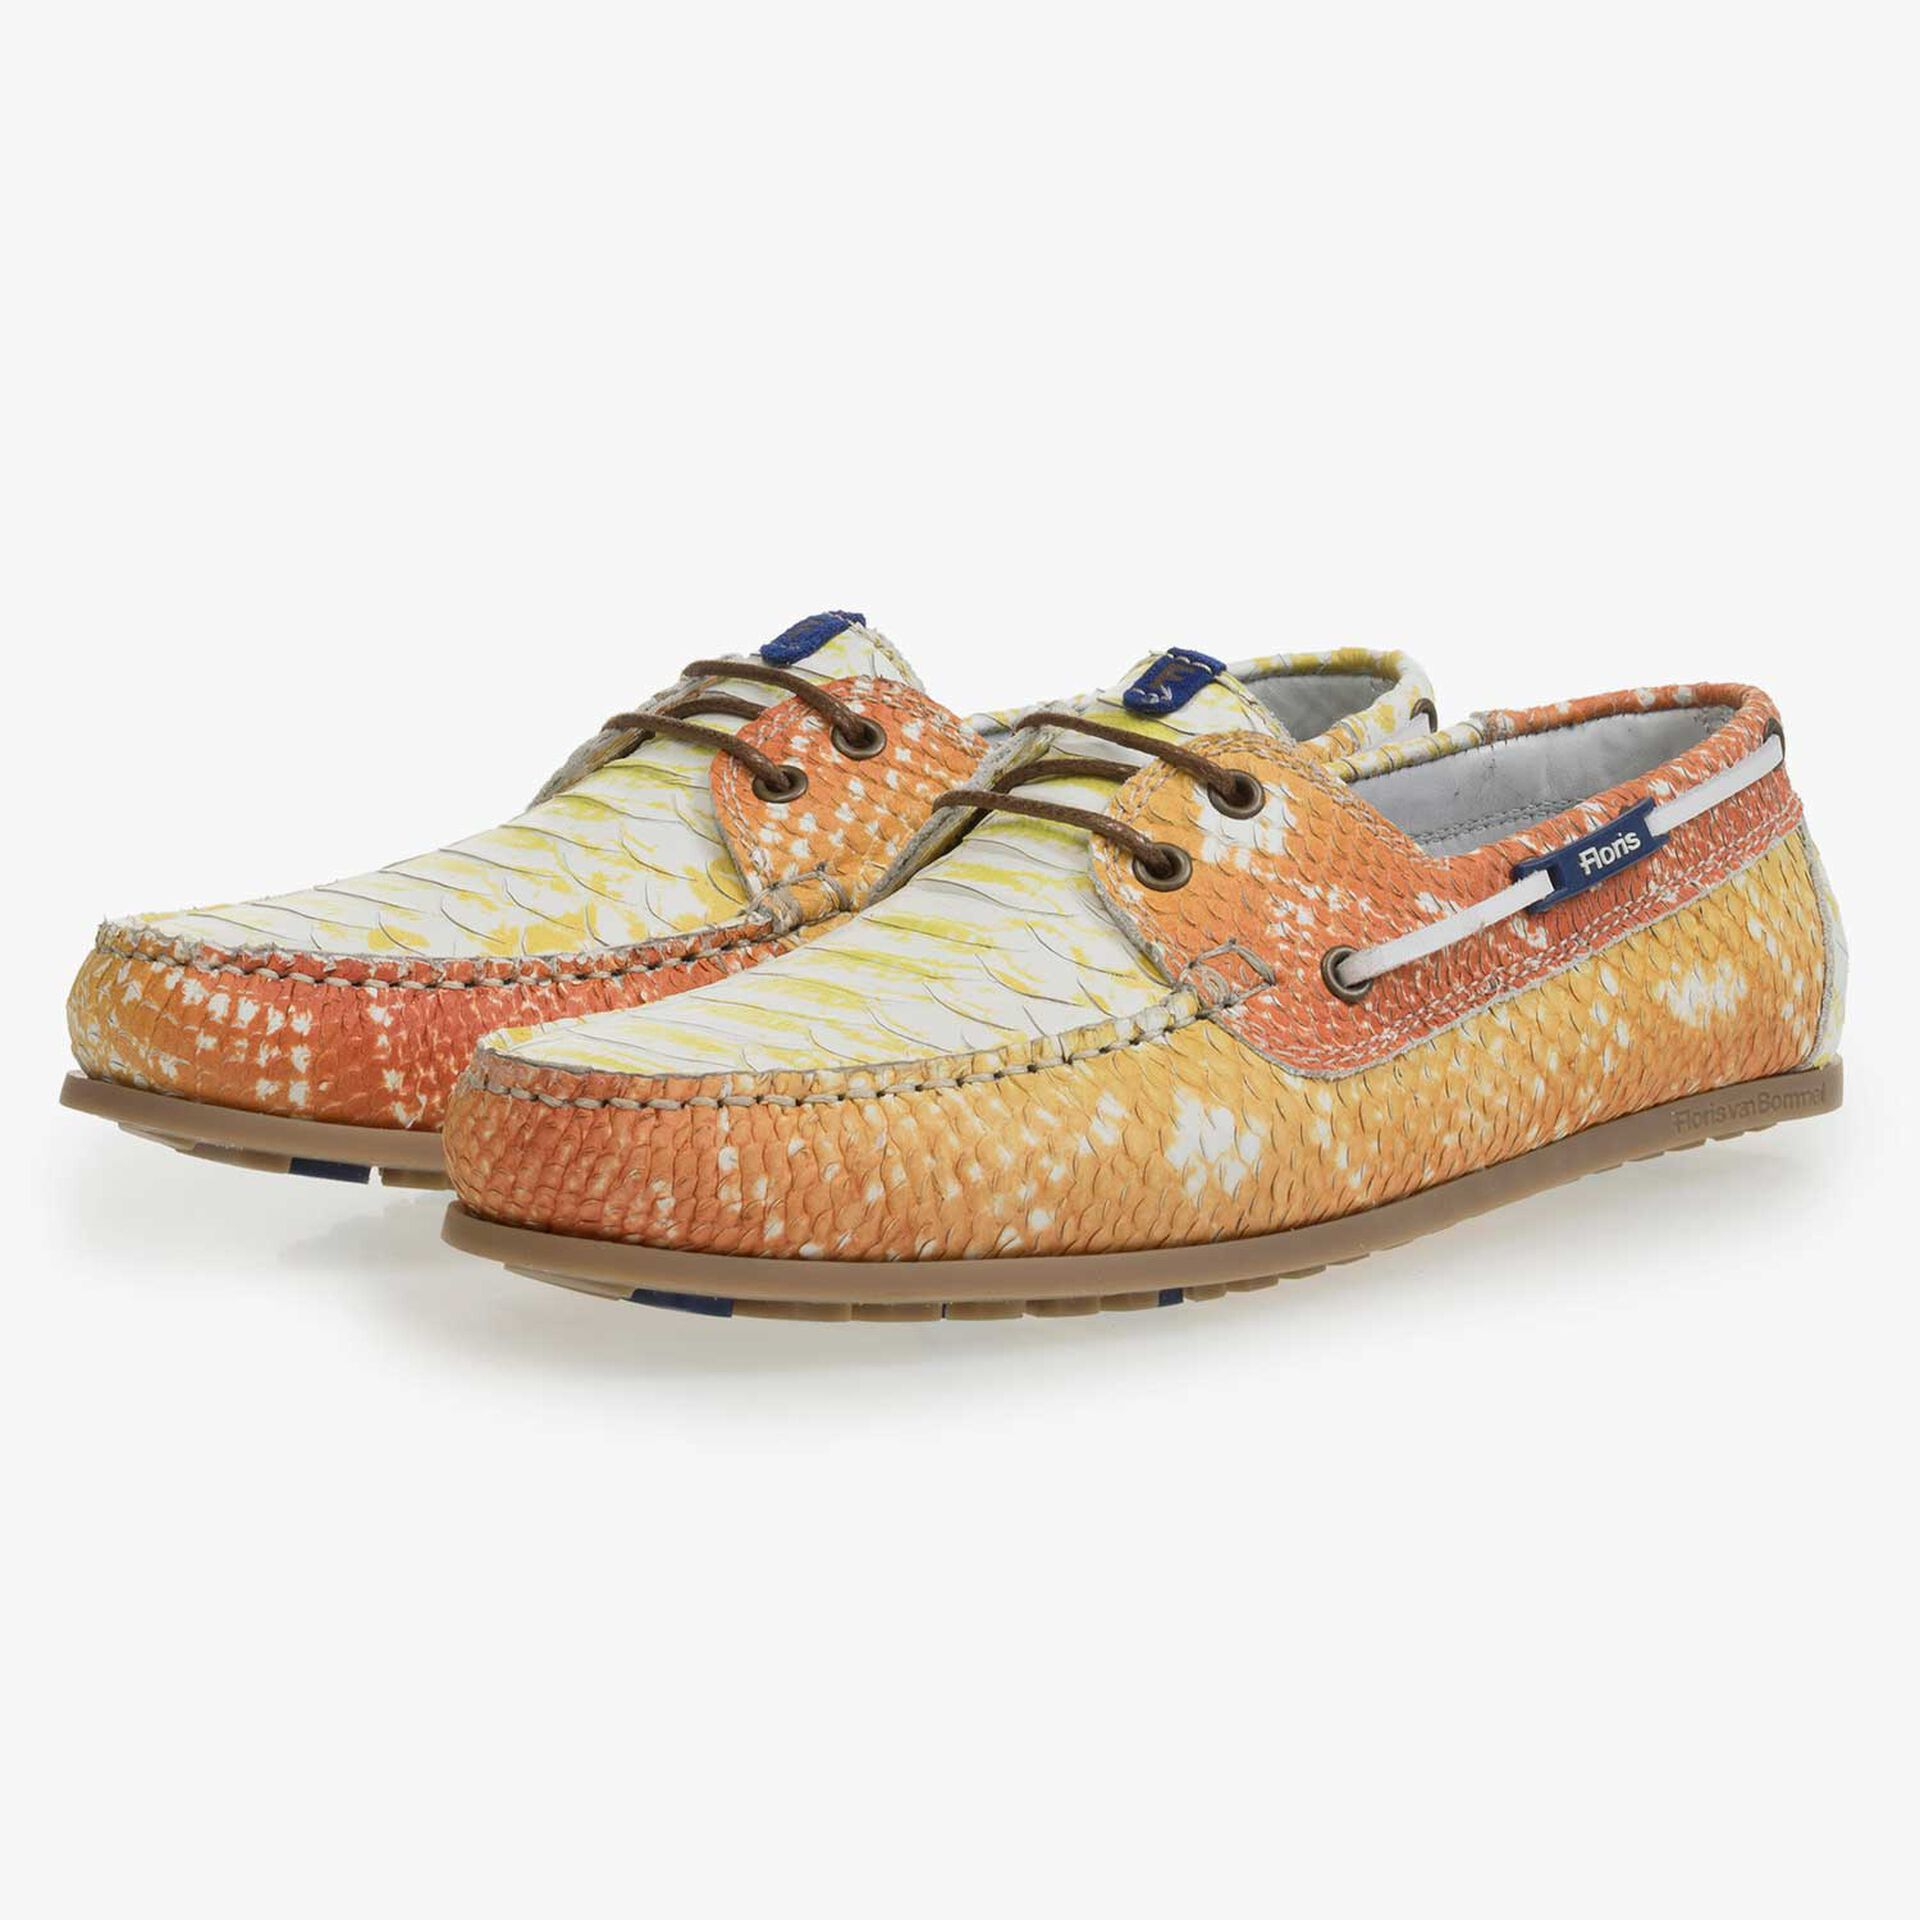 Yellow leather boat shoe with snake print